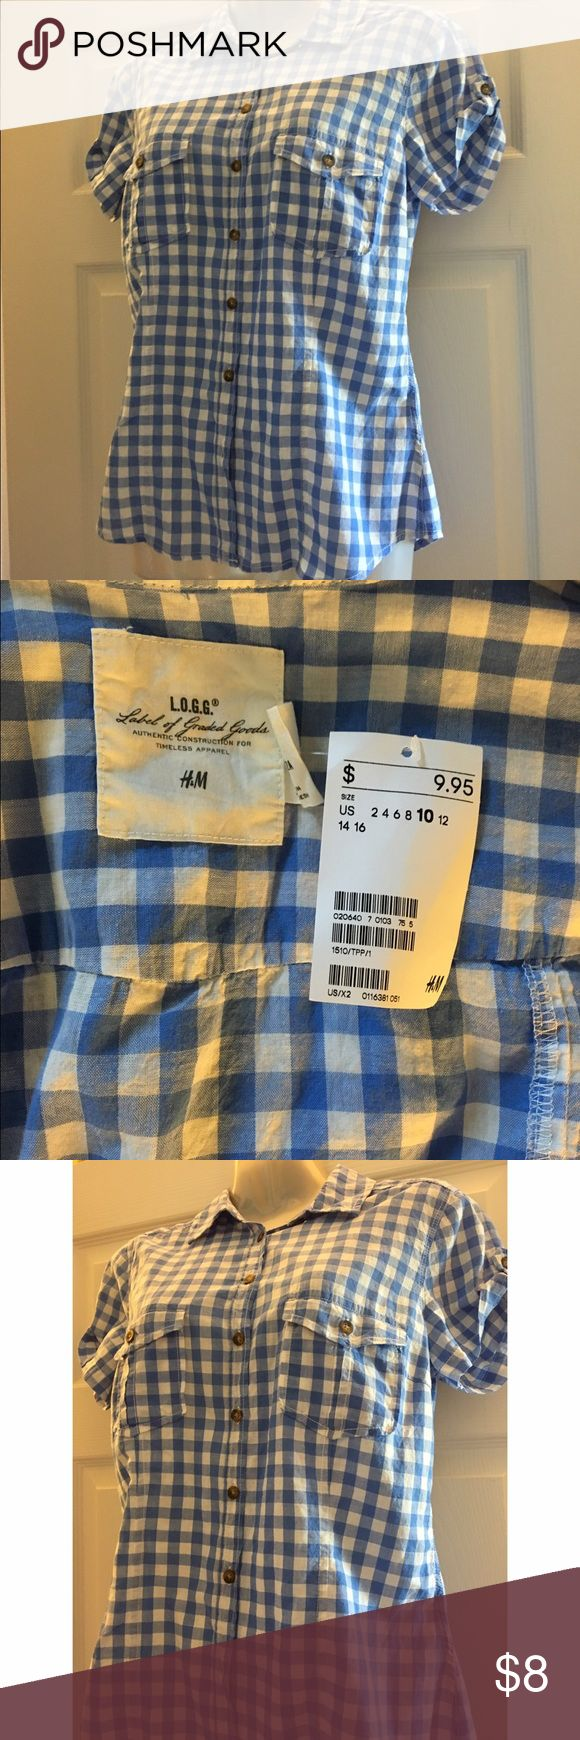 H&M L.O.G.G. Blue and White Tee Shirt New This is an H&M L.O.G.G. Blue and White Tee Shirt New With Tags Size 10 best fits as an Medium. H&M Tops Button Down Shirts